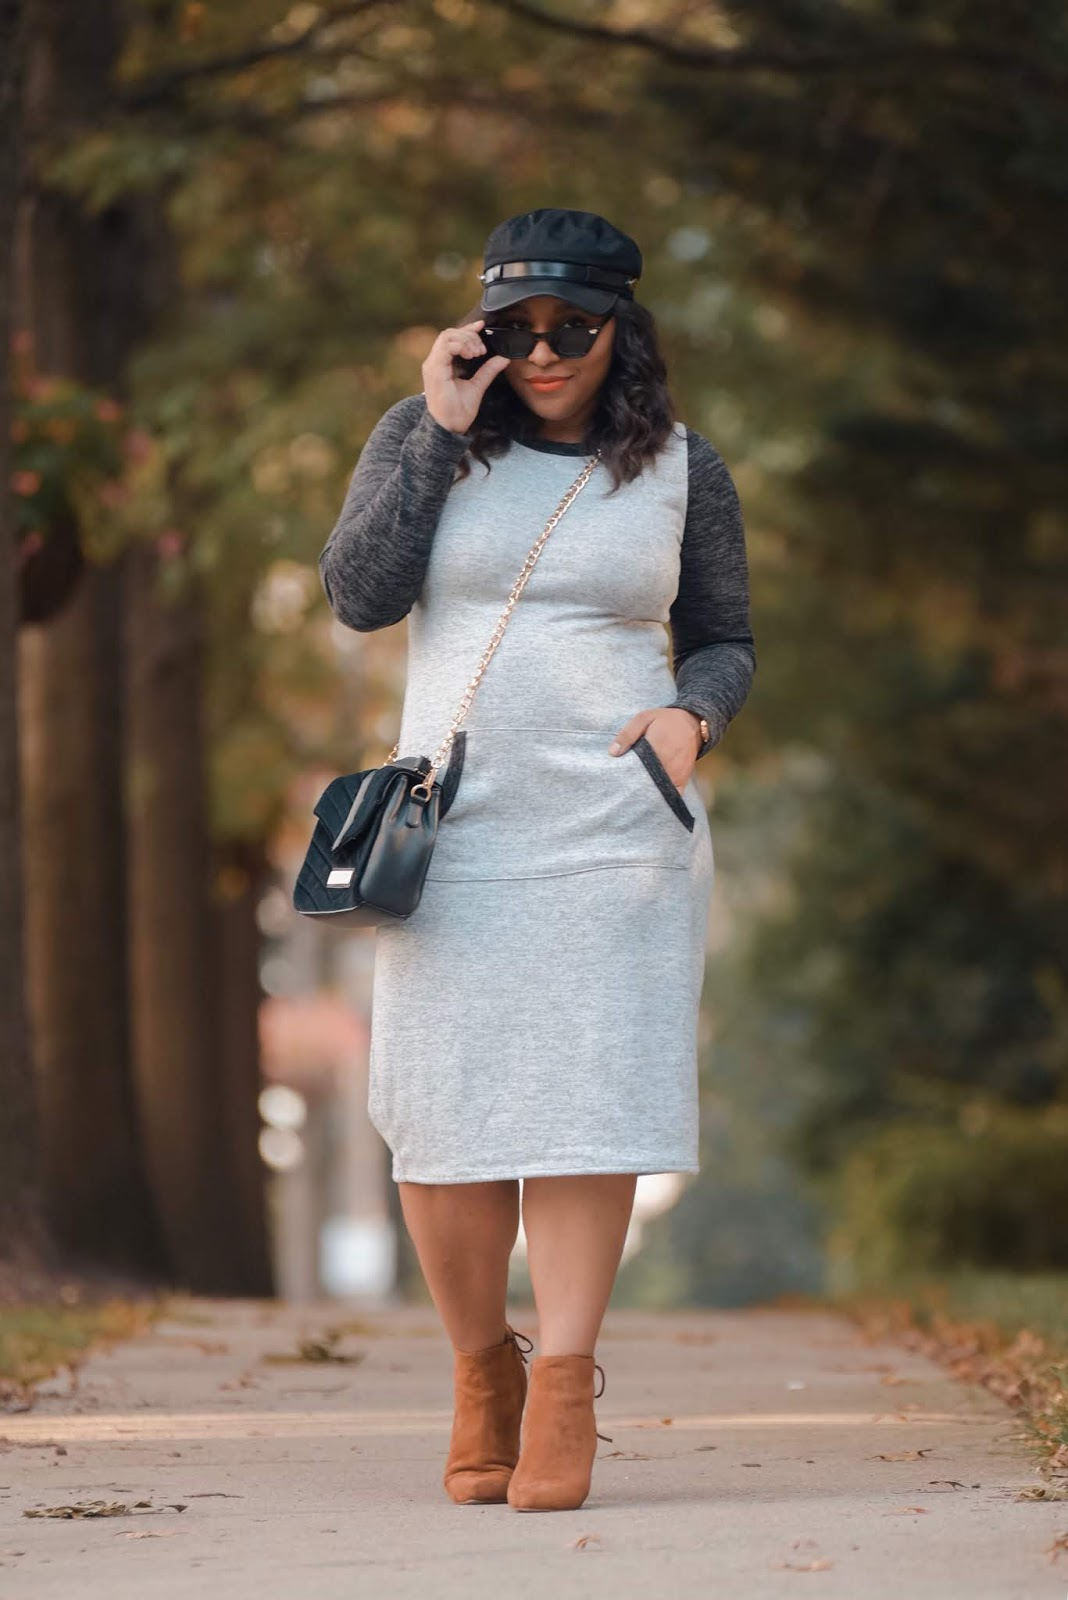 Shoppinkblush, fall fashion, sweater dress, postpartum, fall outfit ideas, fall trends, mom bloggers